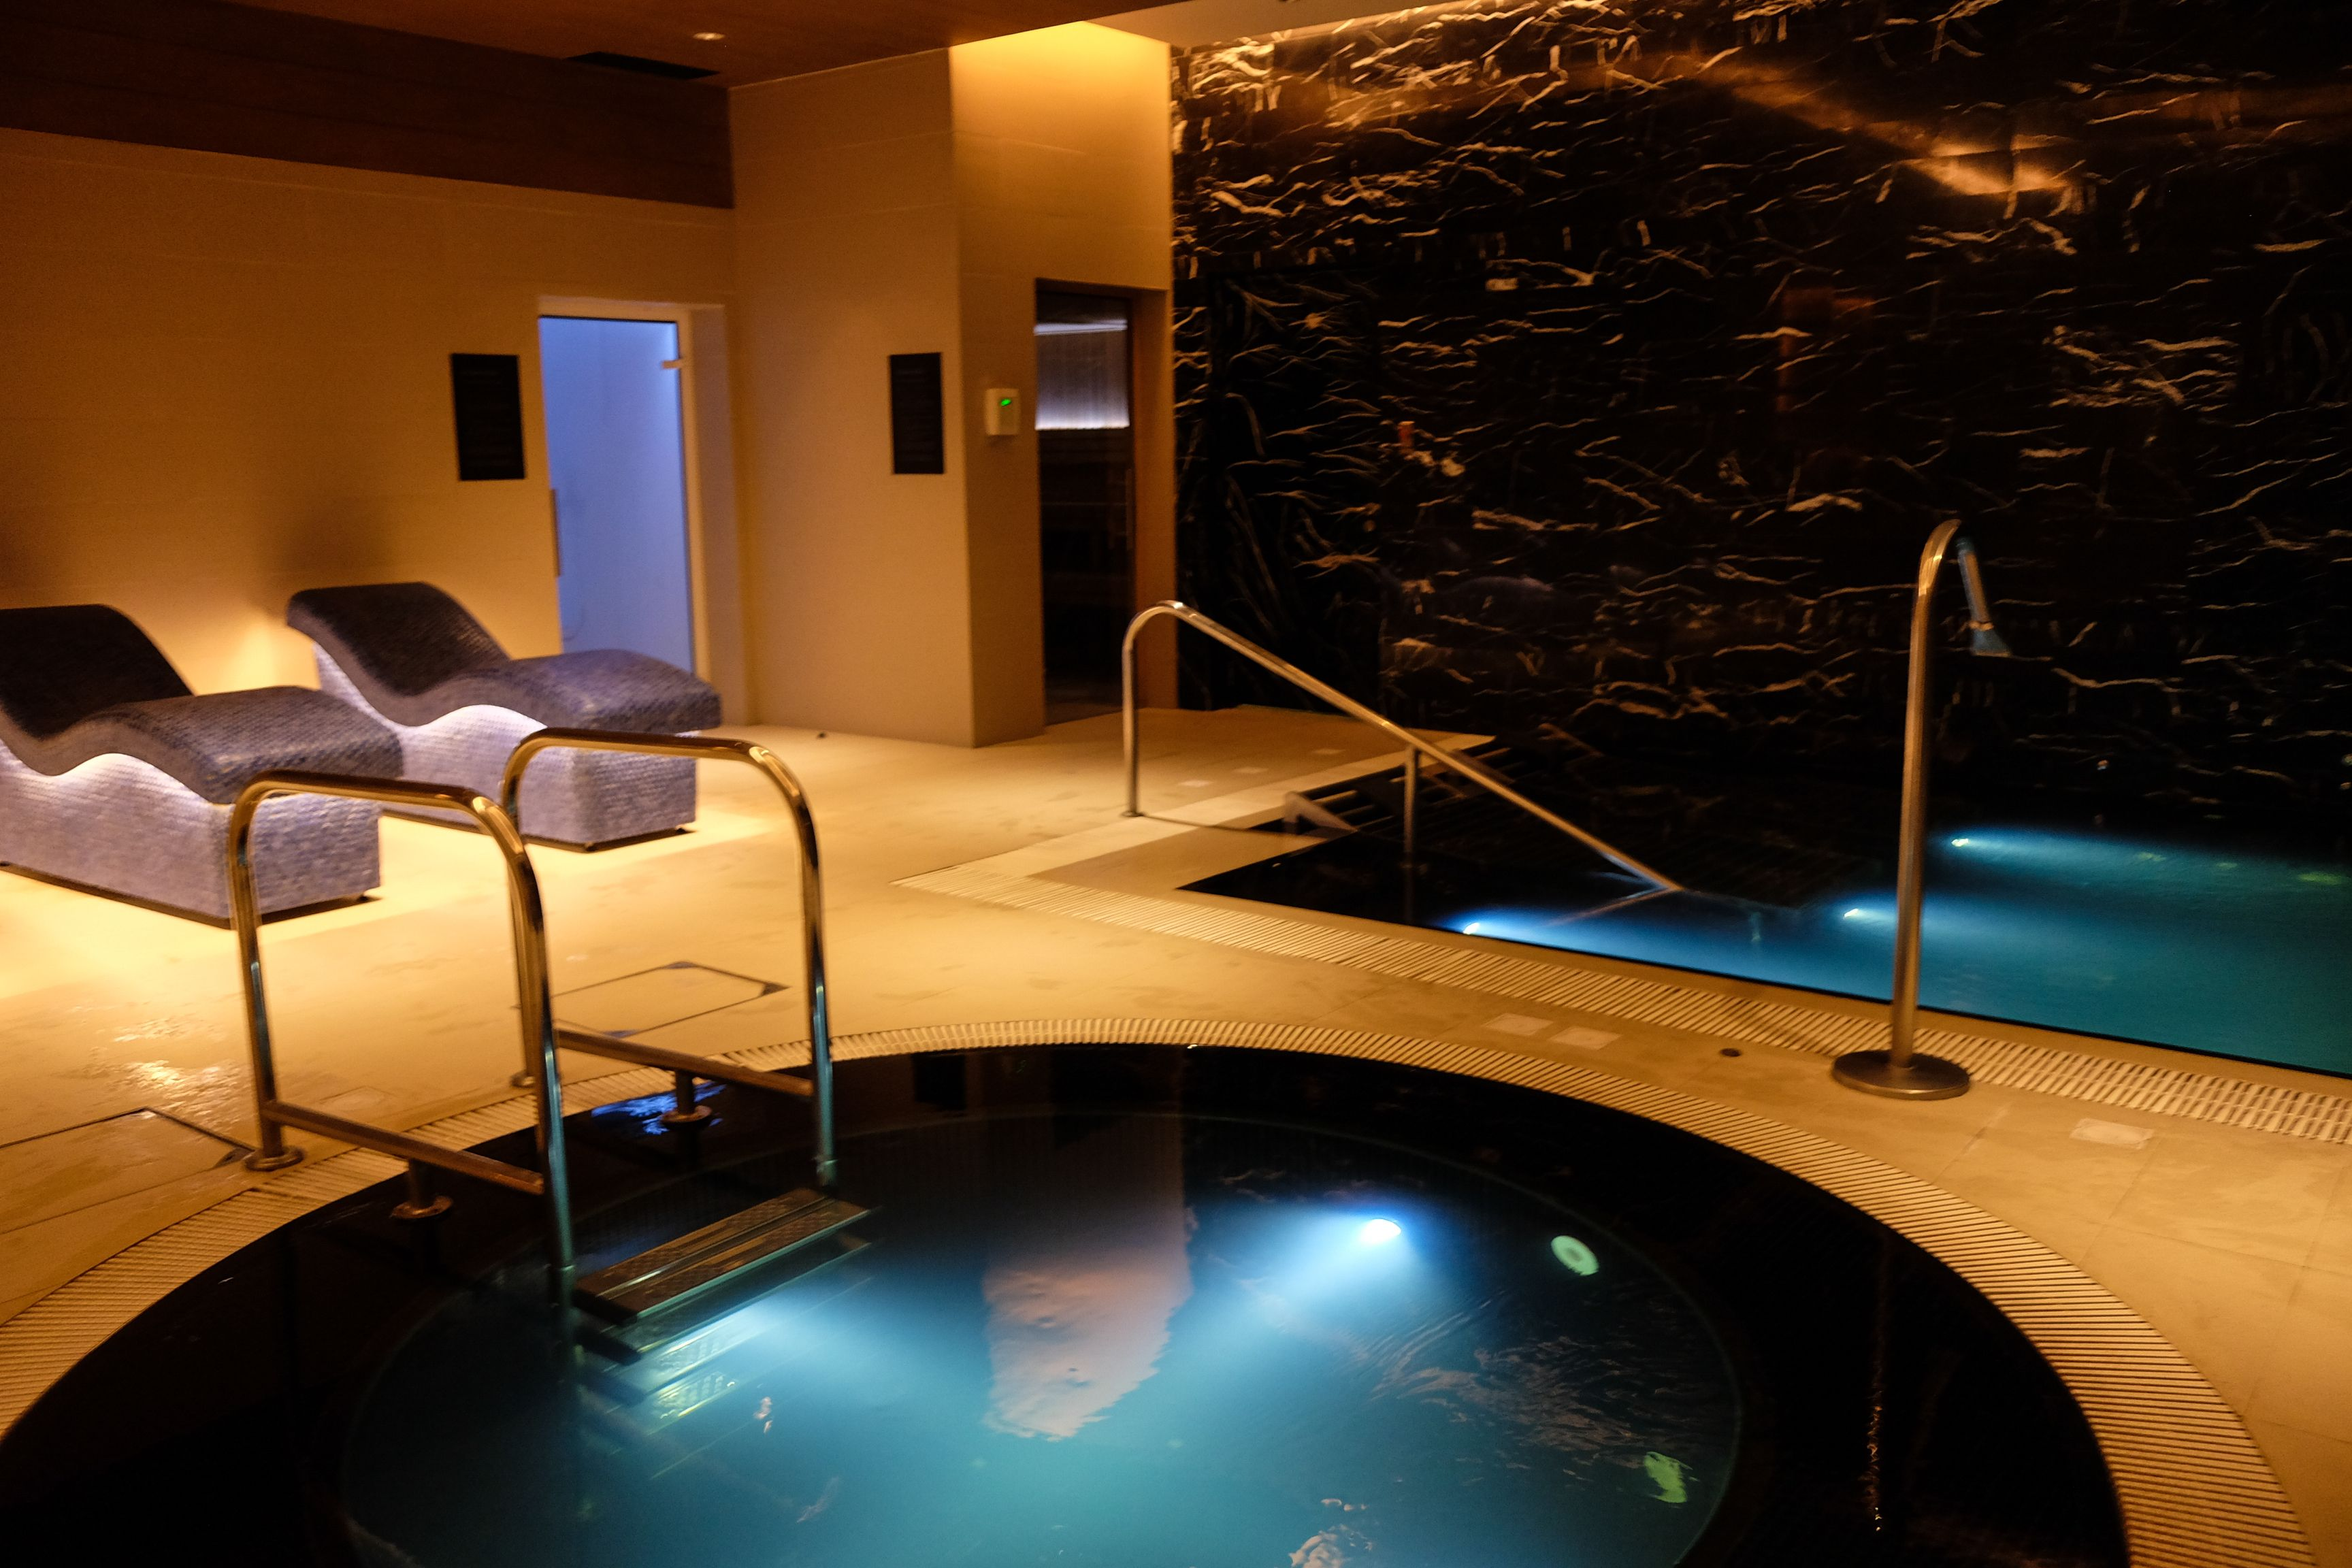 Jacuzzi Pool Hotel Room Ultimate Relaxation At Kerry Sports Steam Room Sauna